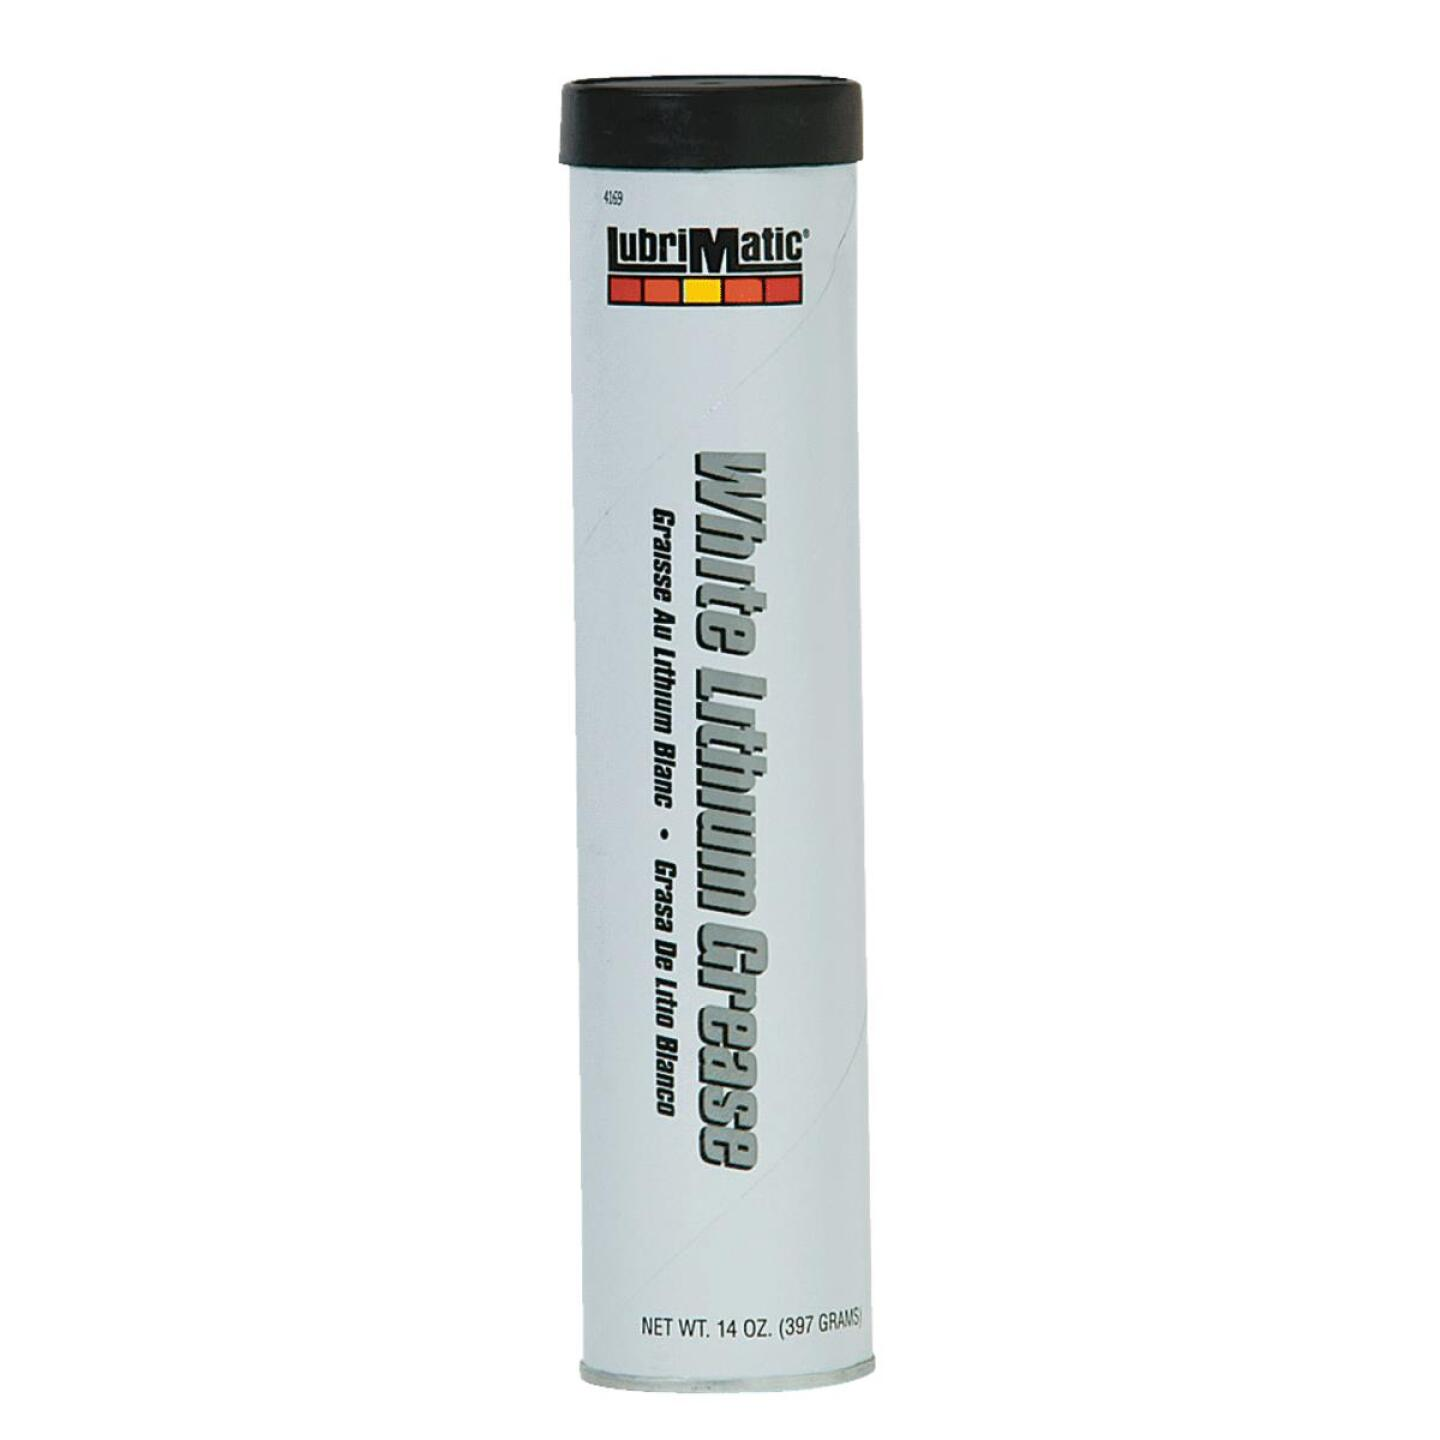 LubriMatic 14 Oz. Cartridge White Lithium Grease Image 1